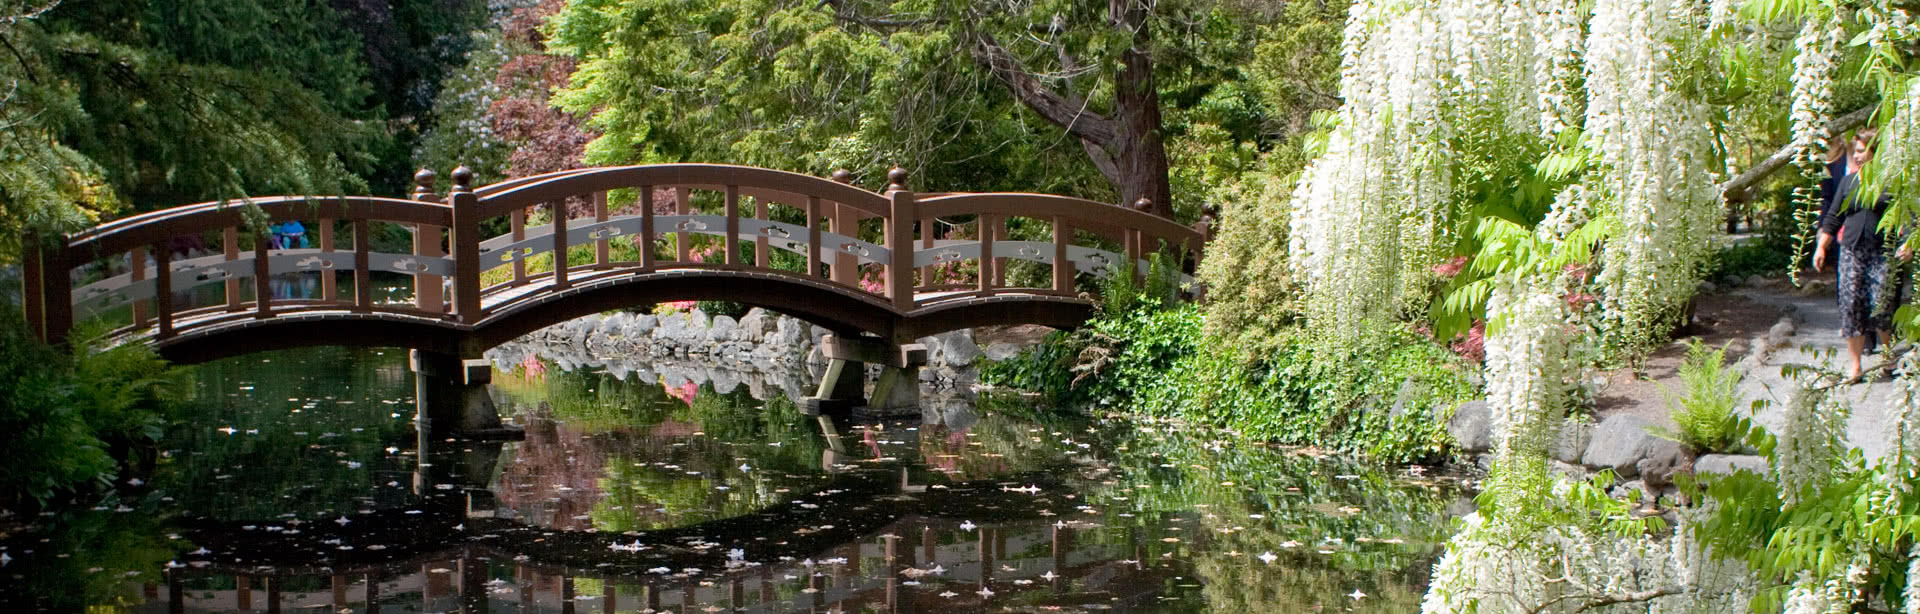 Bridge in Japanese Garden